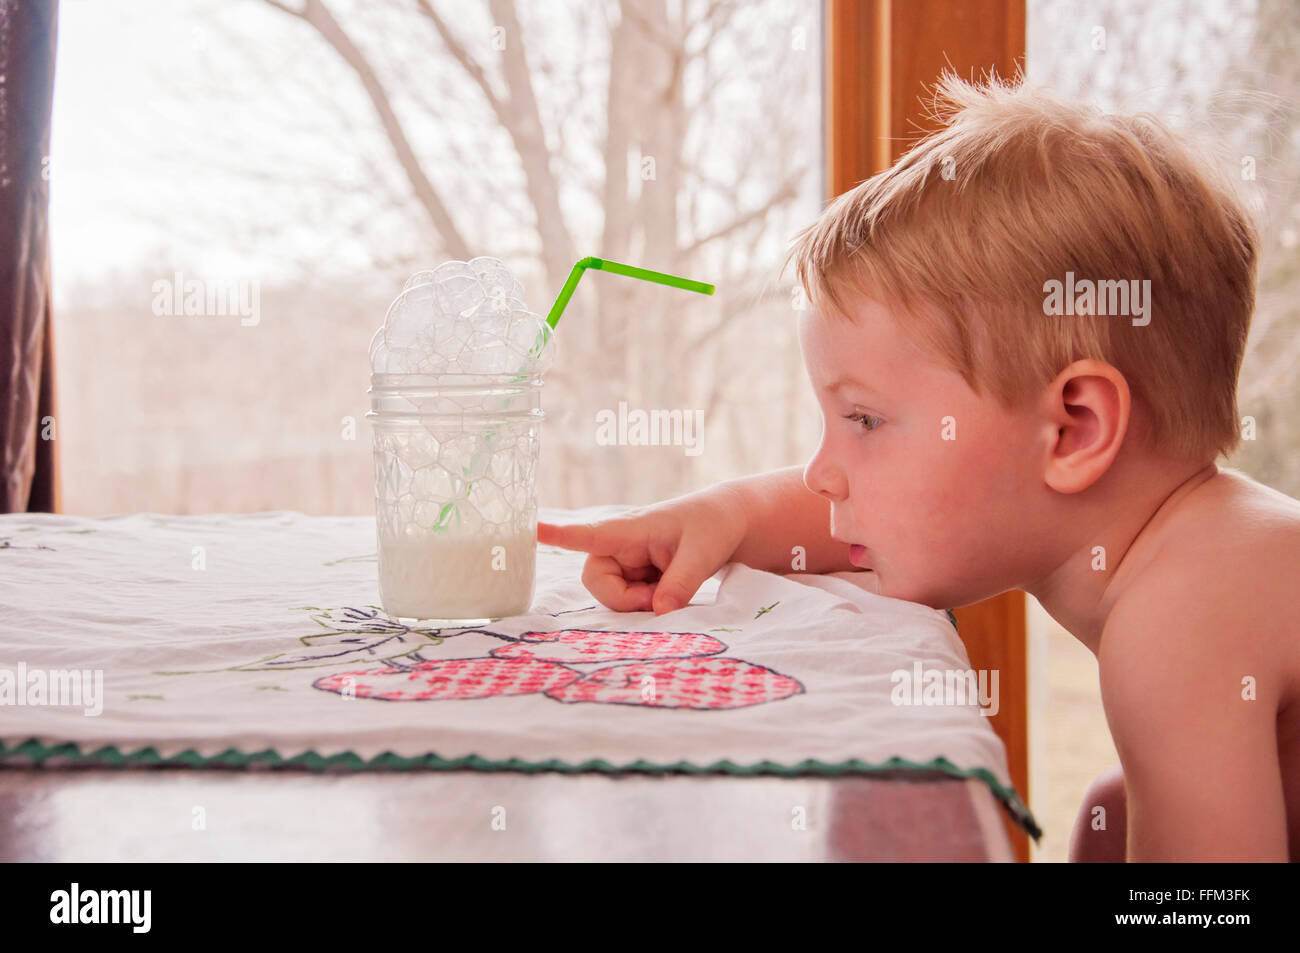 Child pointing at glass half full - Stock Image